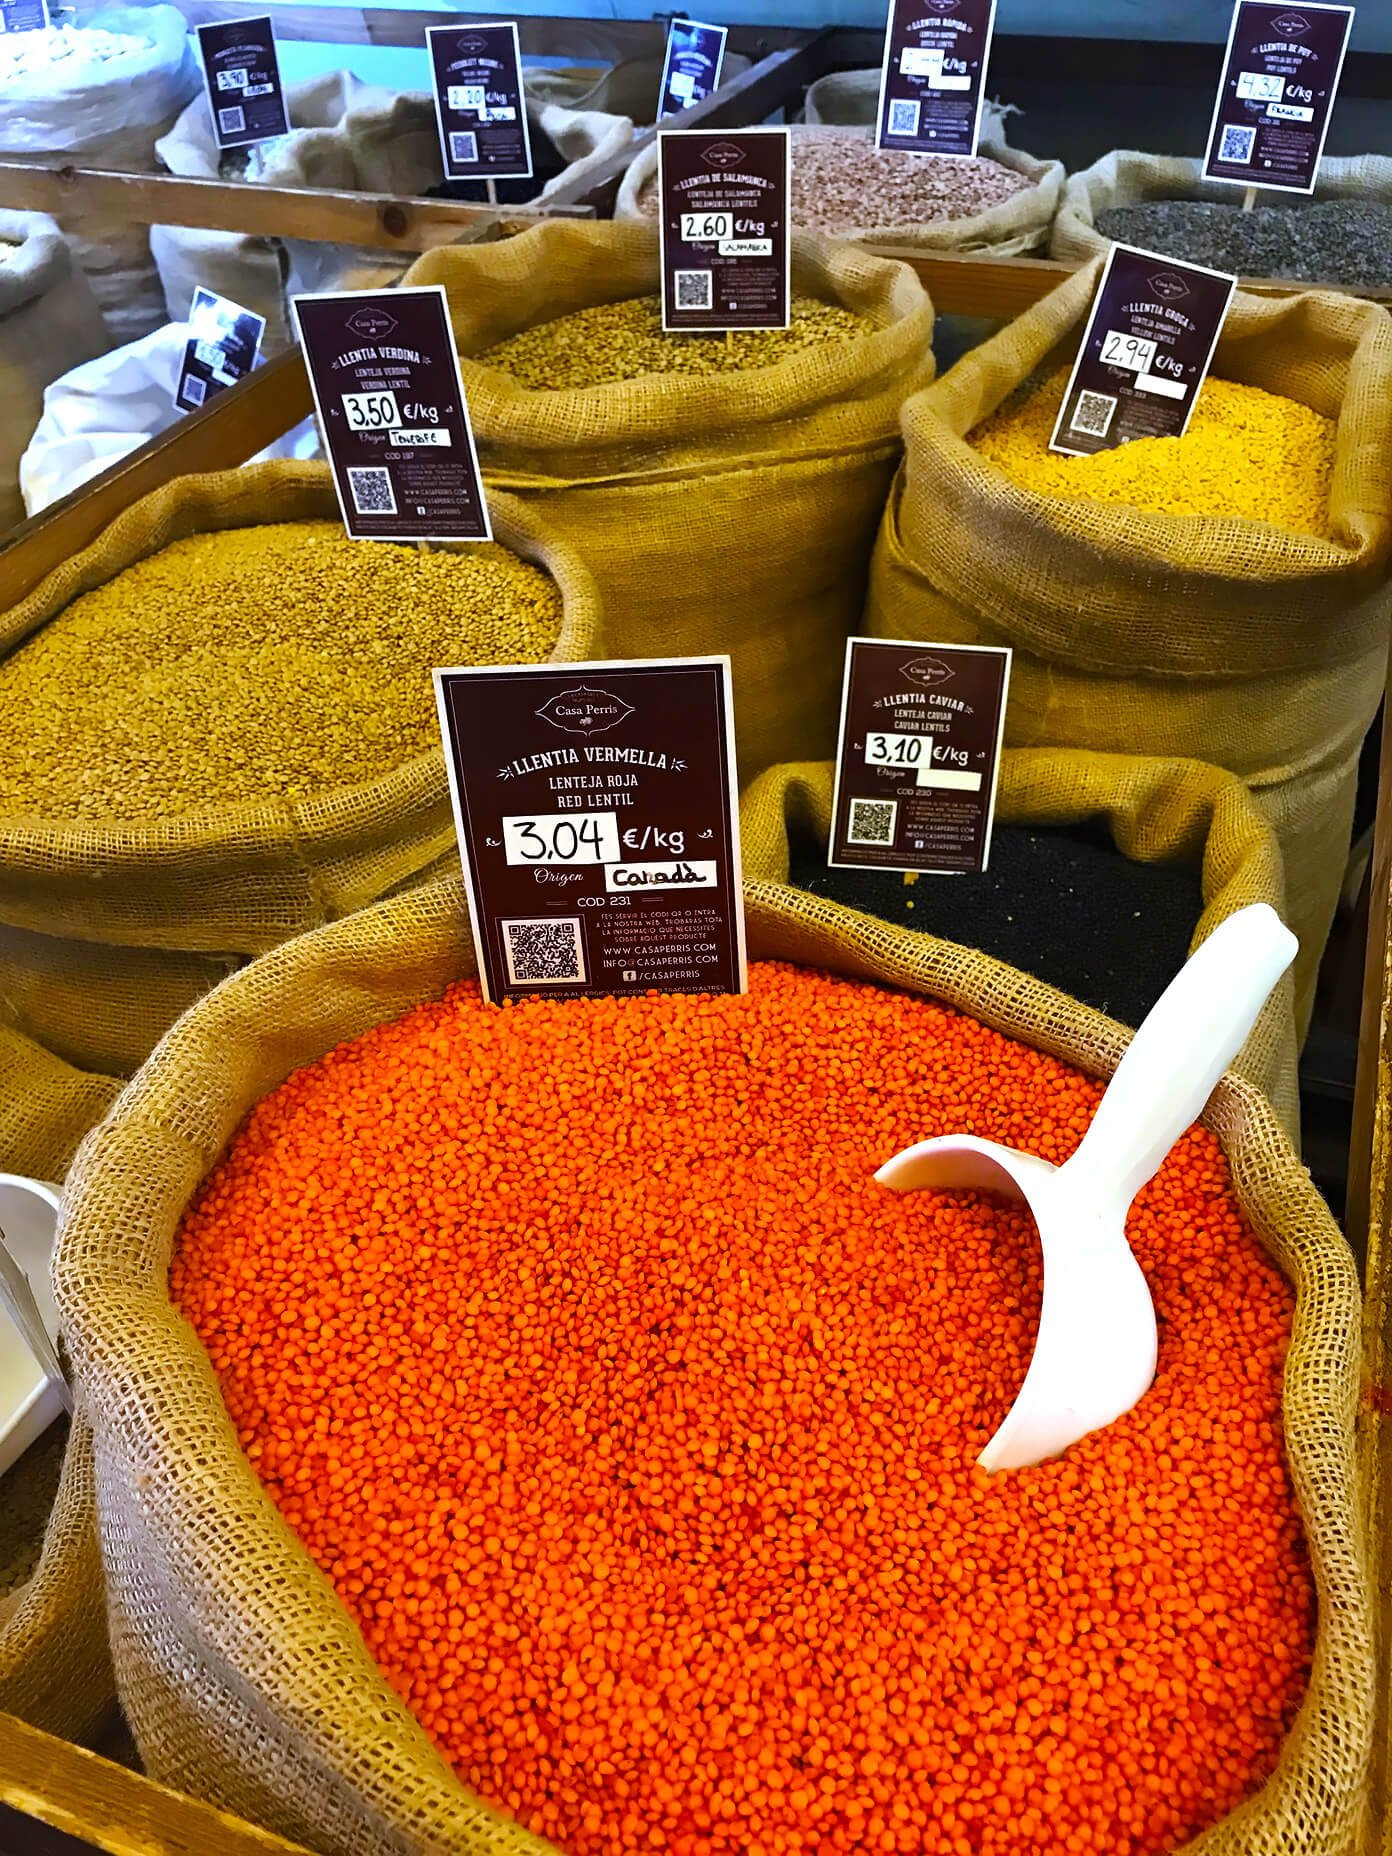 Shopping for lentils for this Lemony Lentil Soup recipe